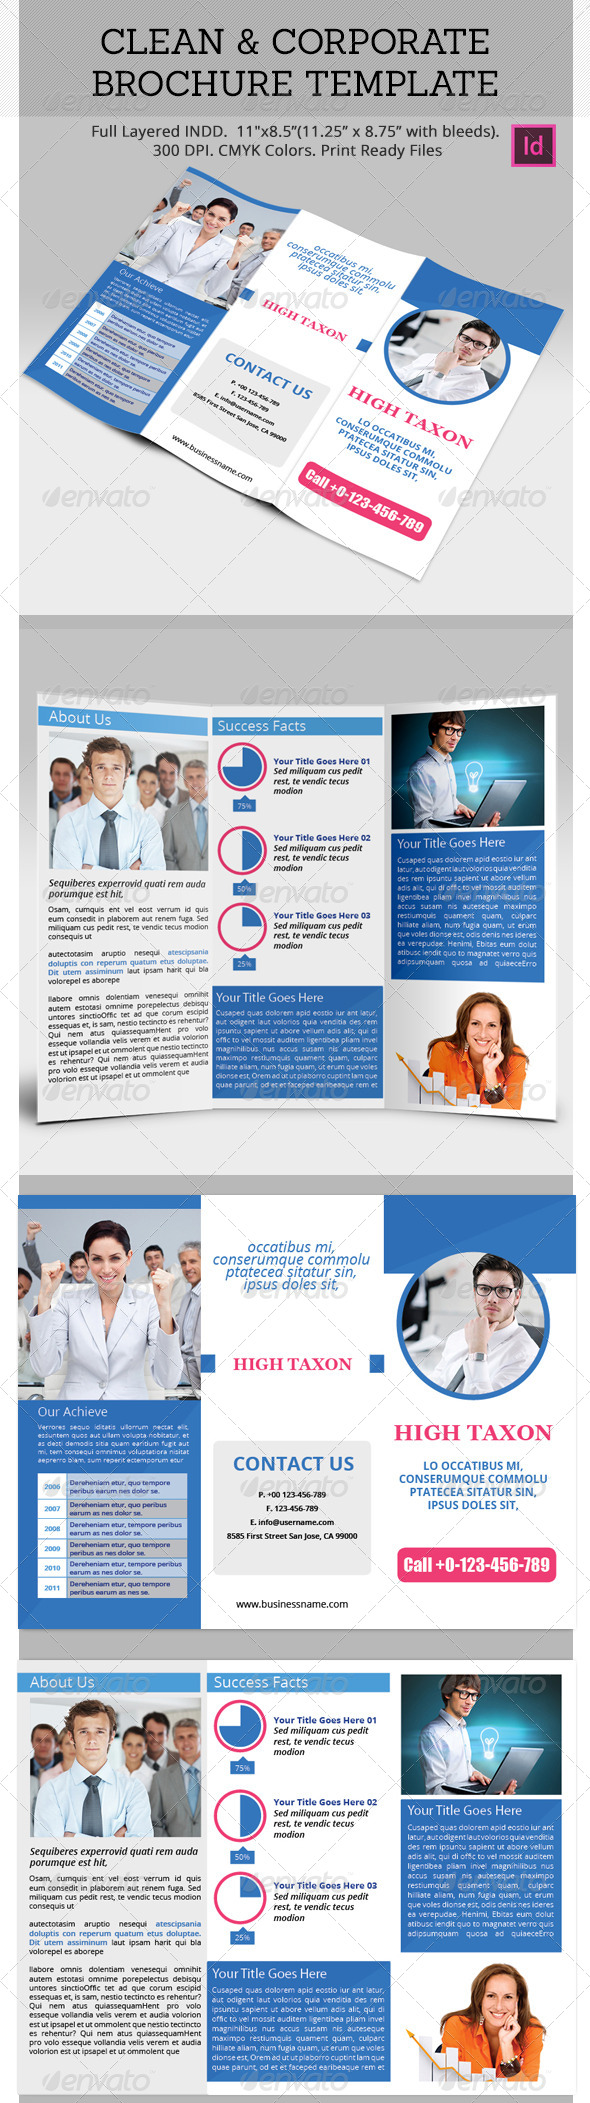 Clean and Corporate Brochure Template - Corporate Brochures